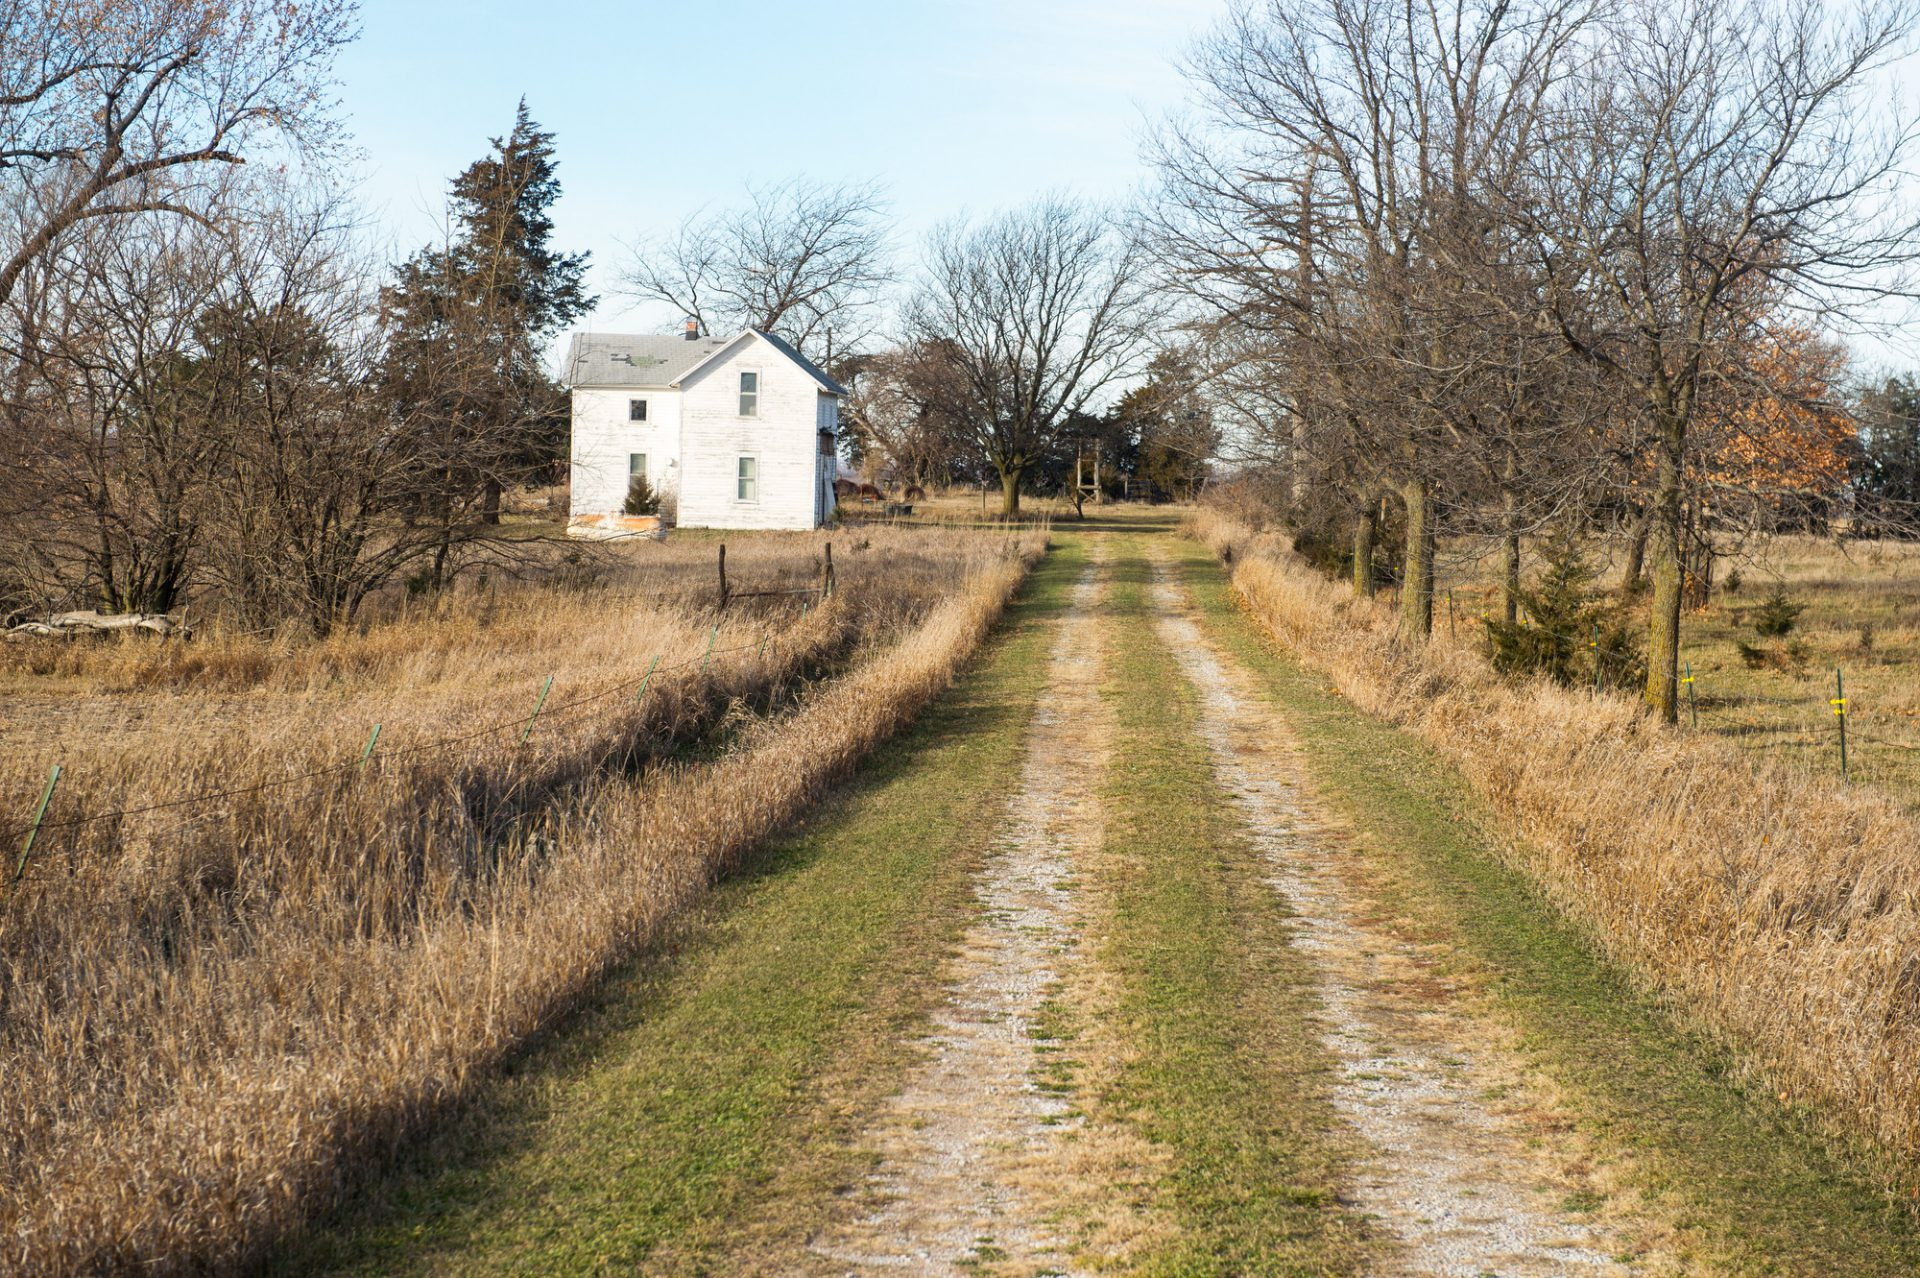 Photo: A country road leads to an old farm house in Bennet, Nebraska.